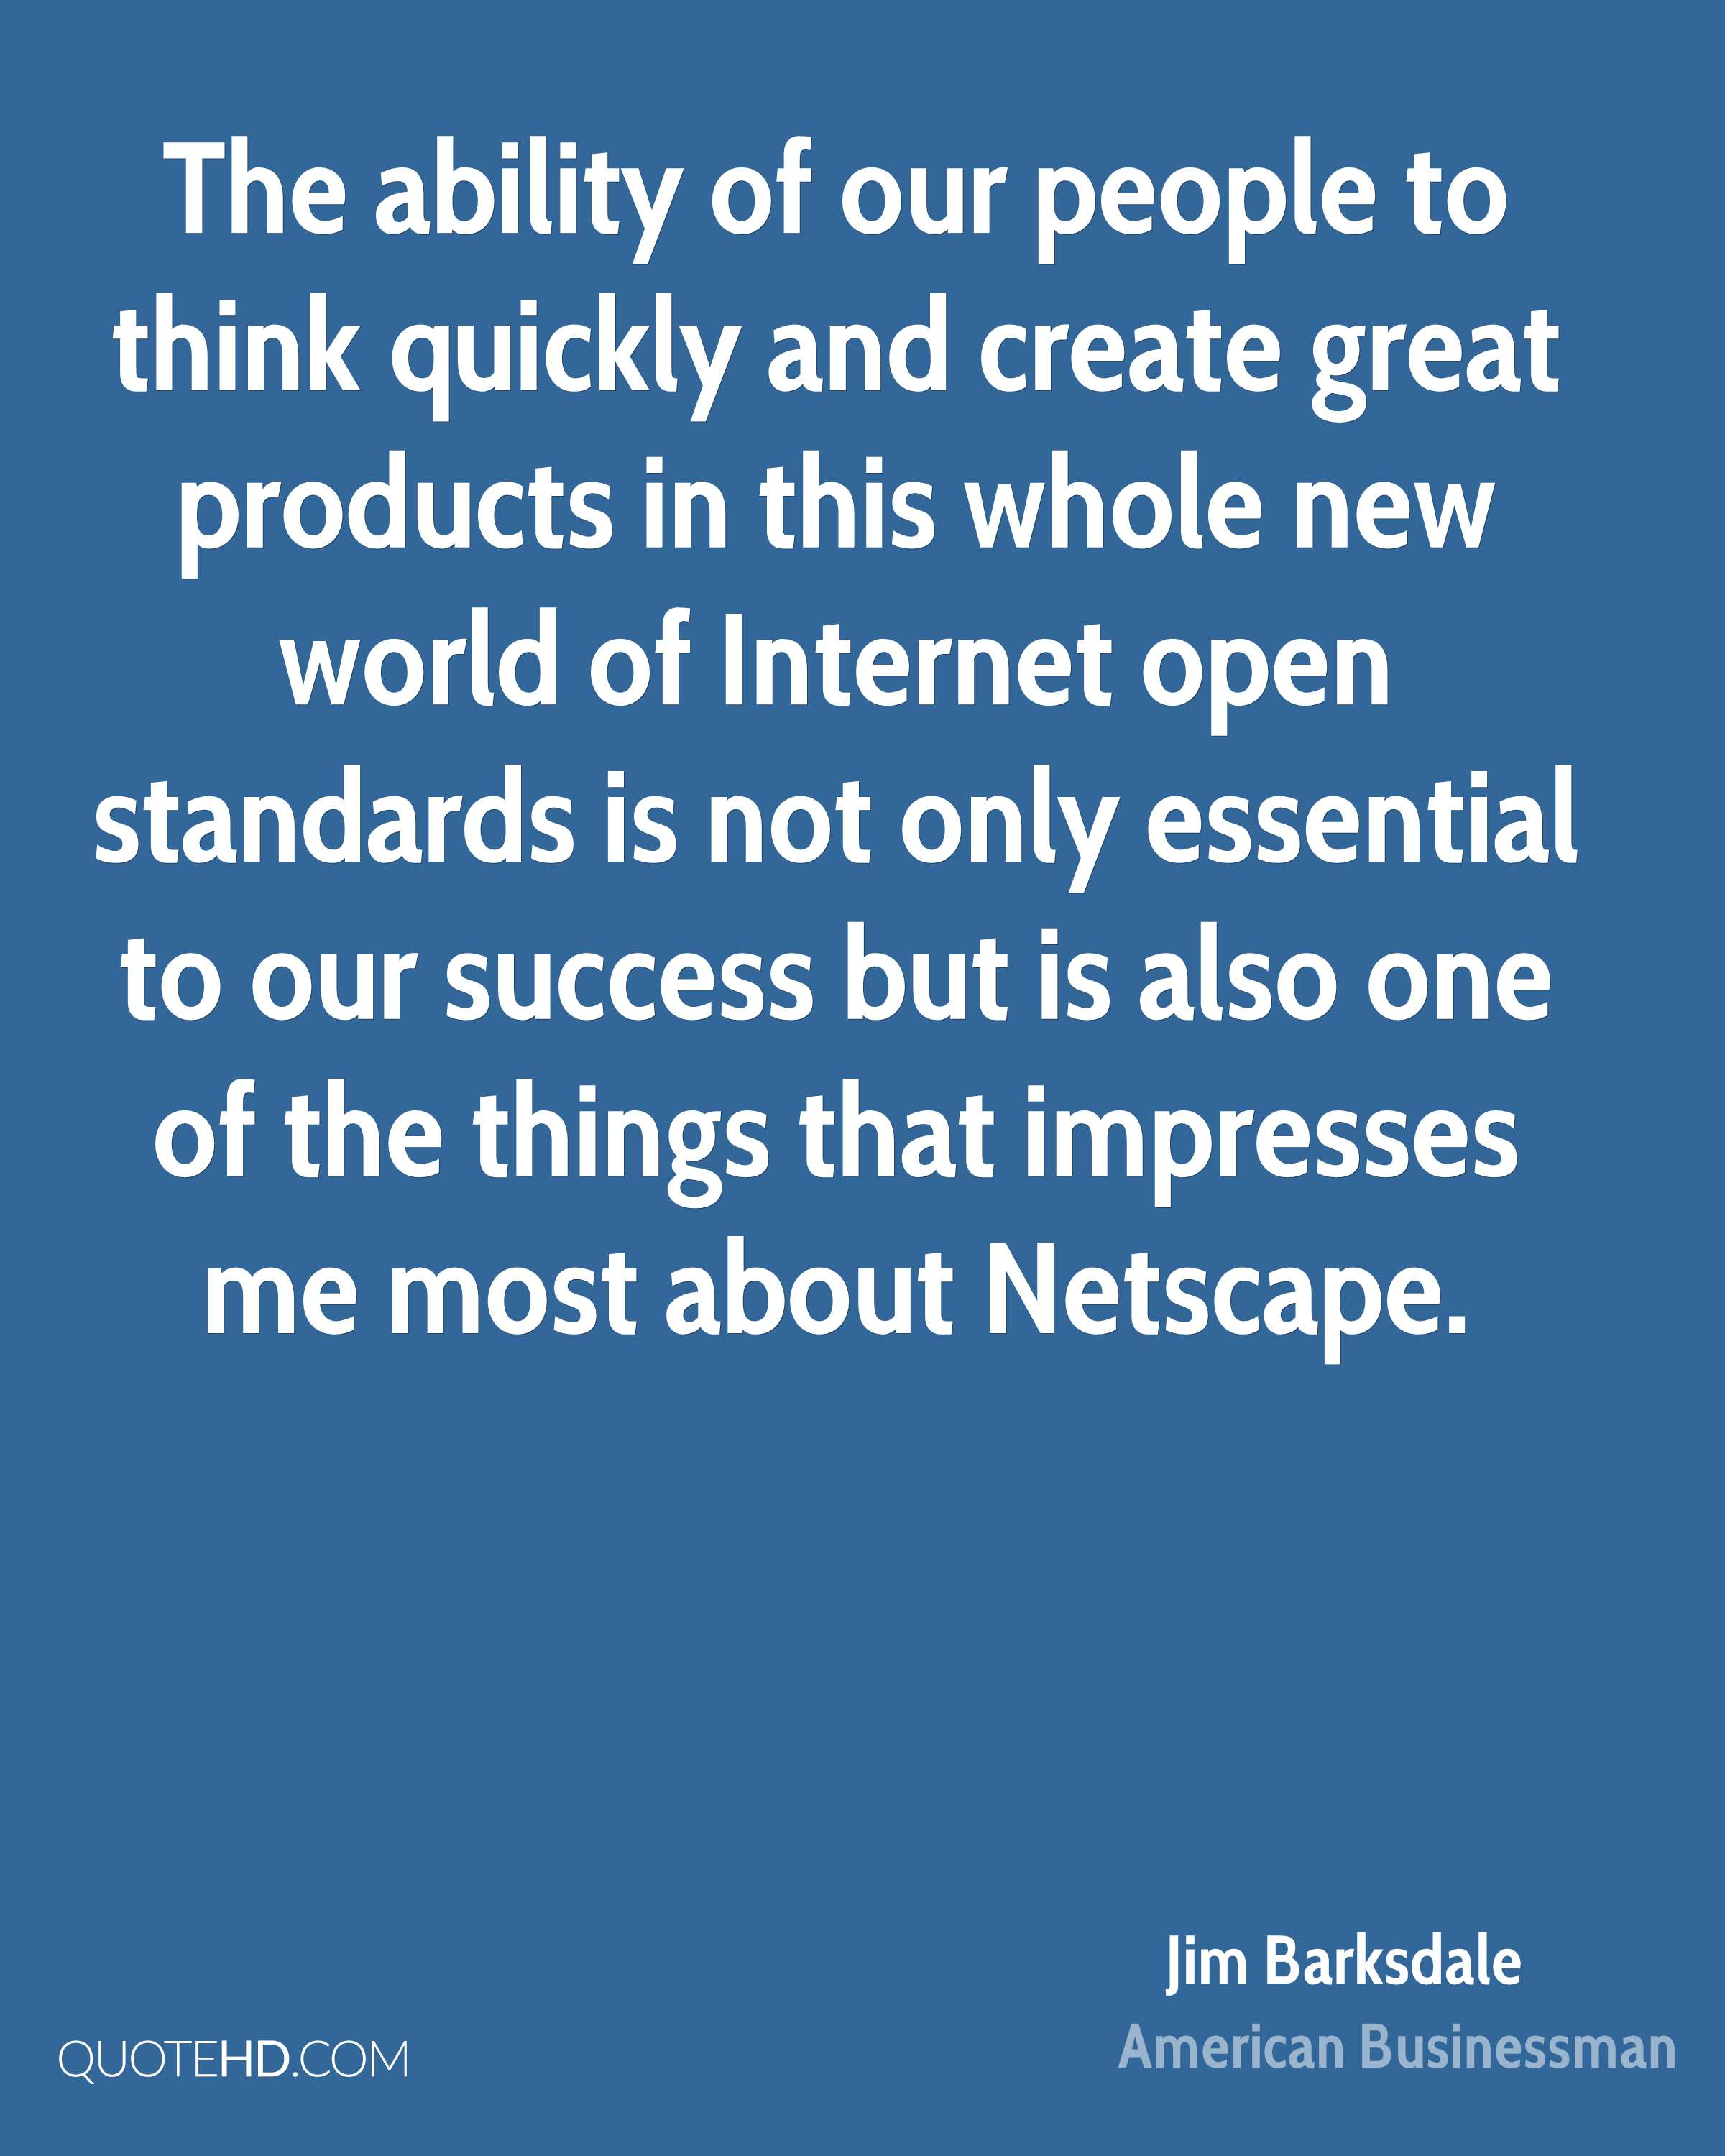 The ability of our people to think quickly and create great products in this whole new world of Internet open standards is not only essential to our success but is also one of the things that impresses me most about Netscape.